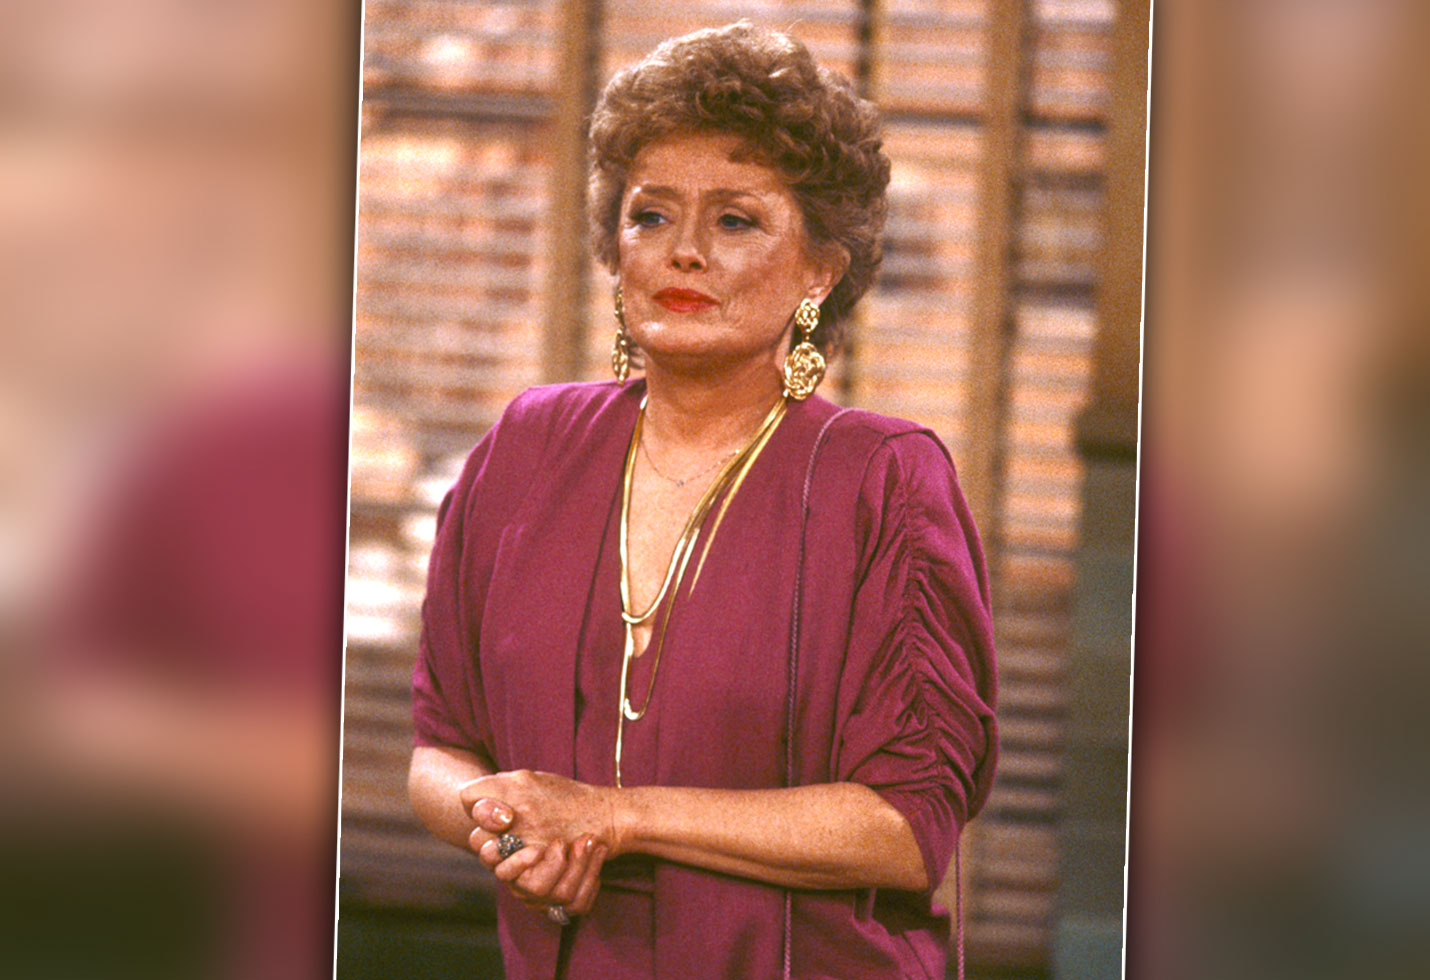 Discussion on this topic: Belinda Emmett, rue-mcclanahan/